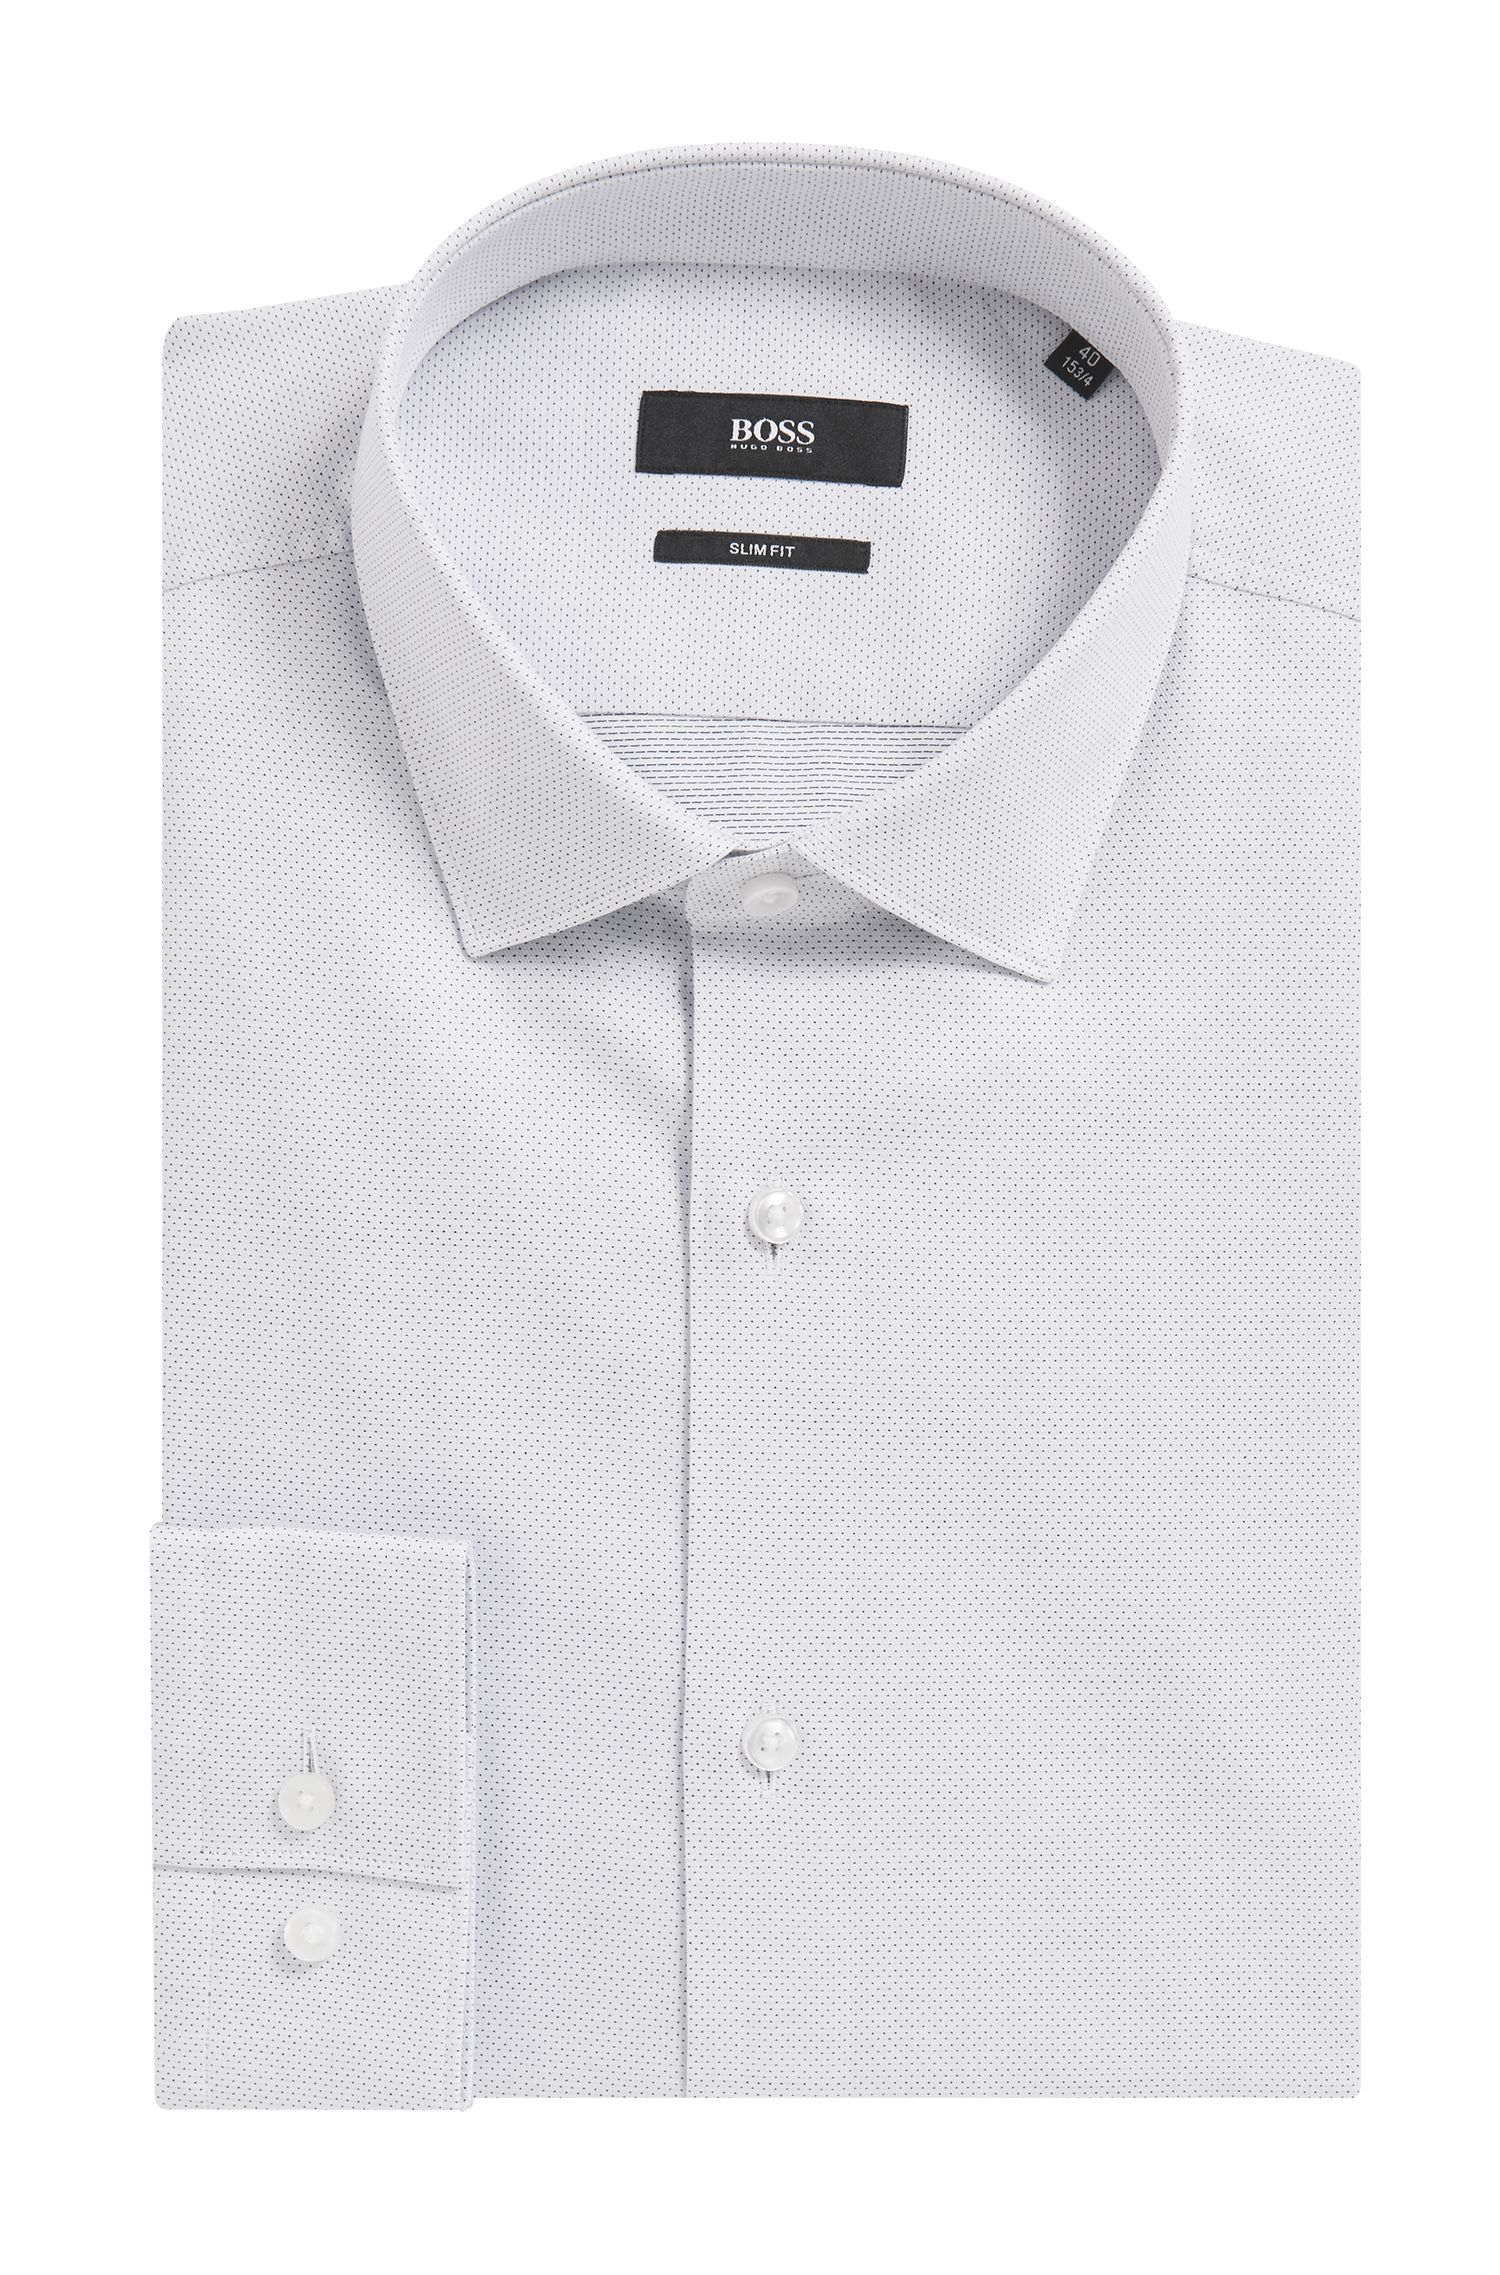 Slim-fit dot-patterned shirt in yarn-dyed cotton twill